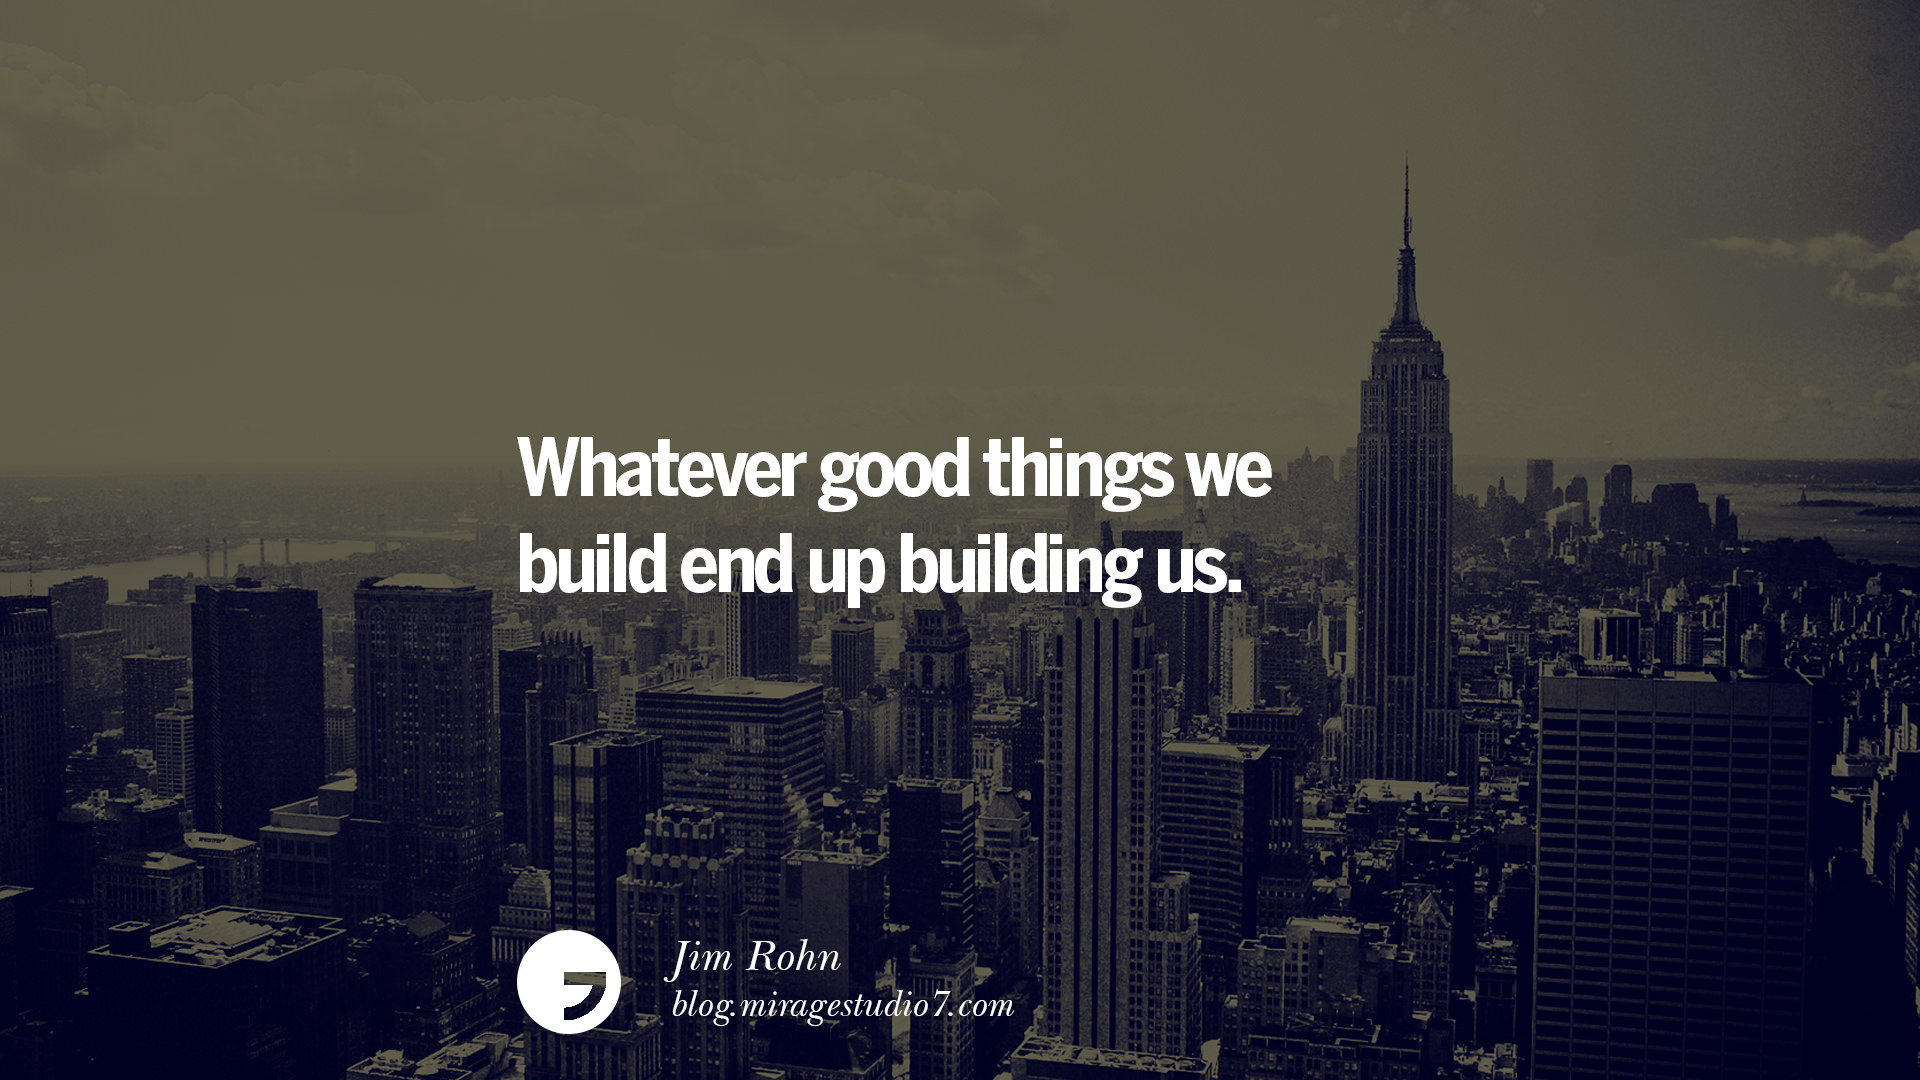 25+ Best Ideas about Architecture Quotes on Pinterest ...